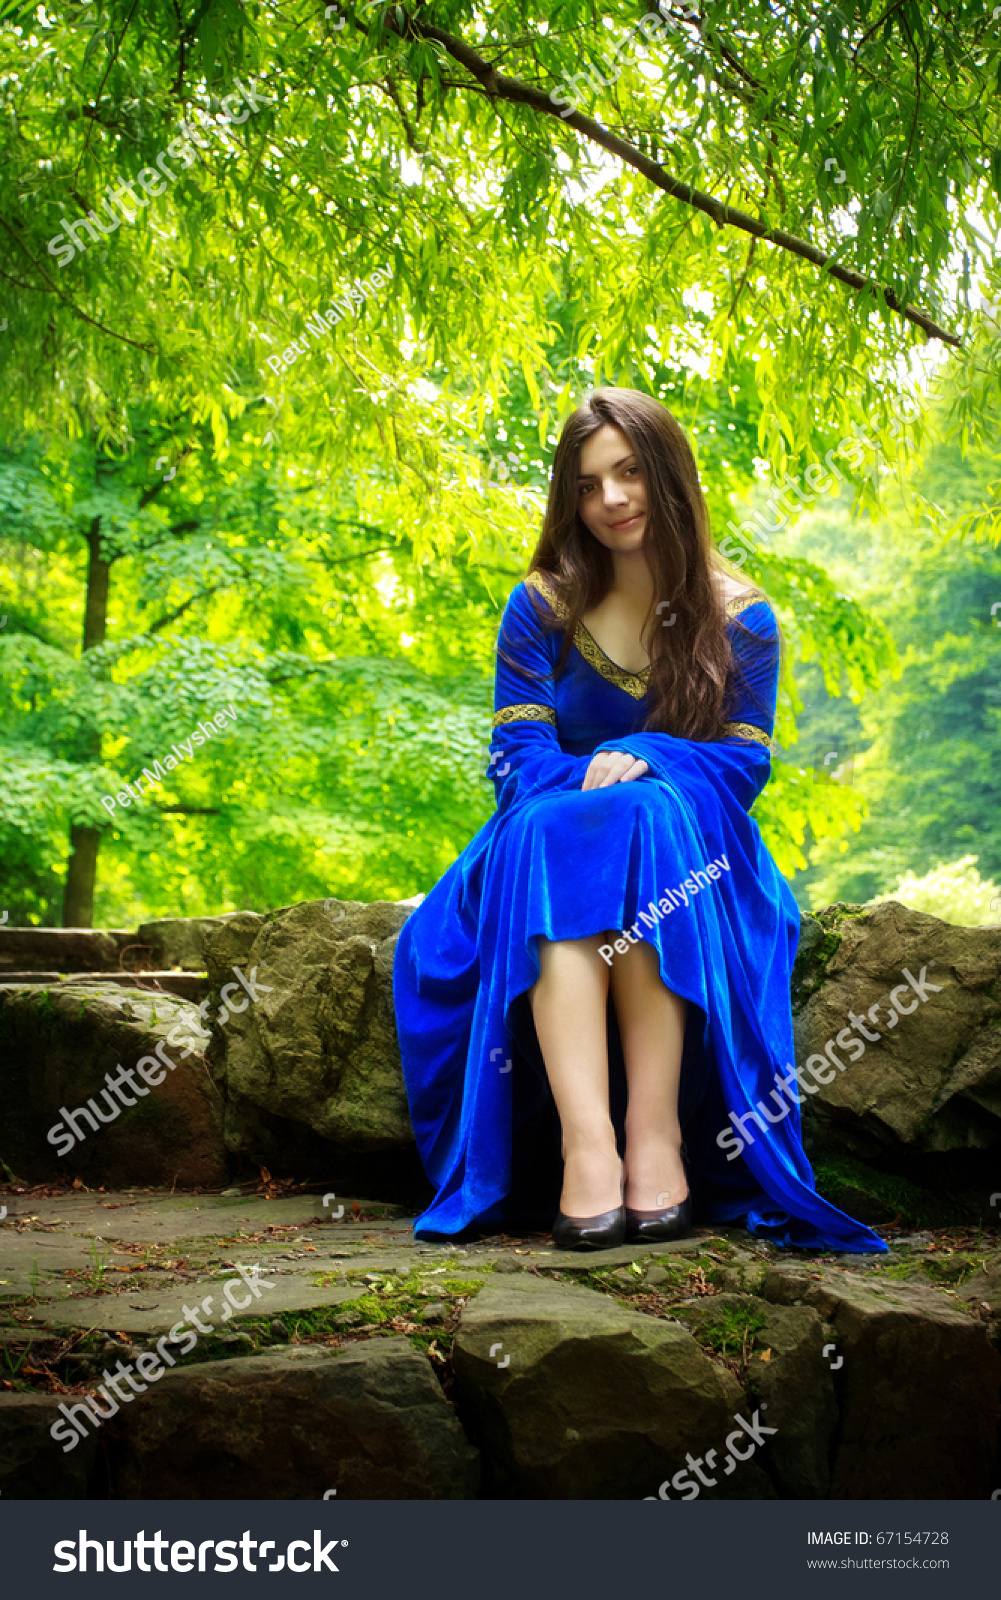 Medieval Girl Blue Dress Sitting On Stock Photo 67154728 ...